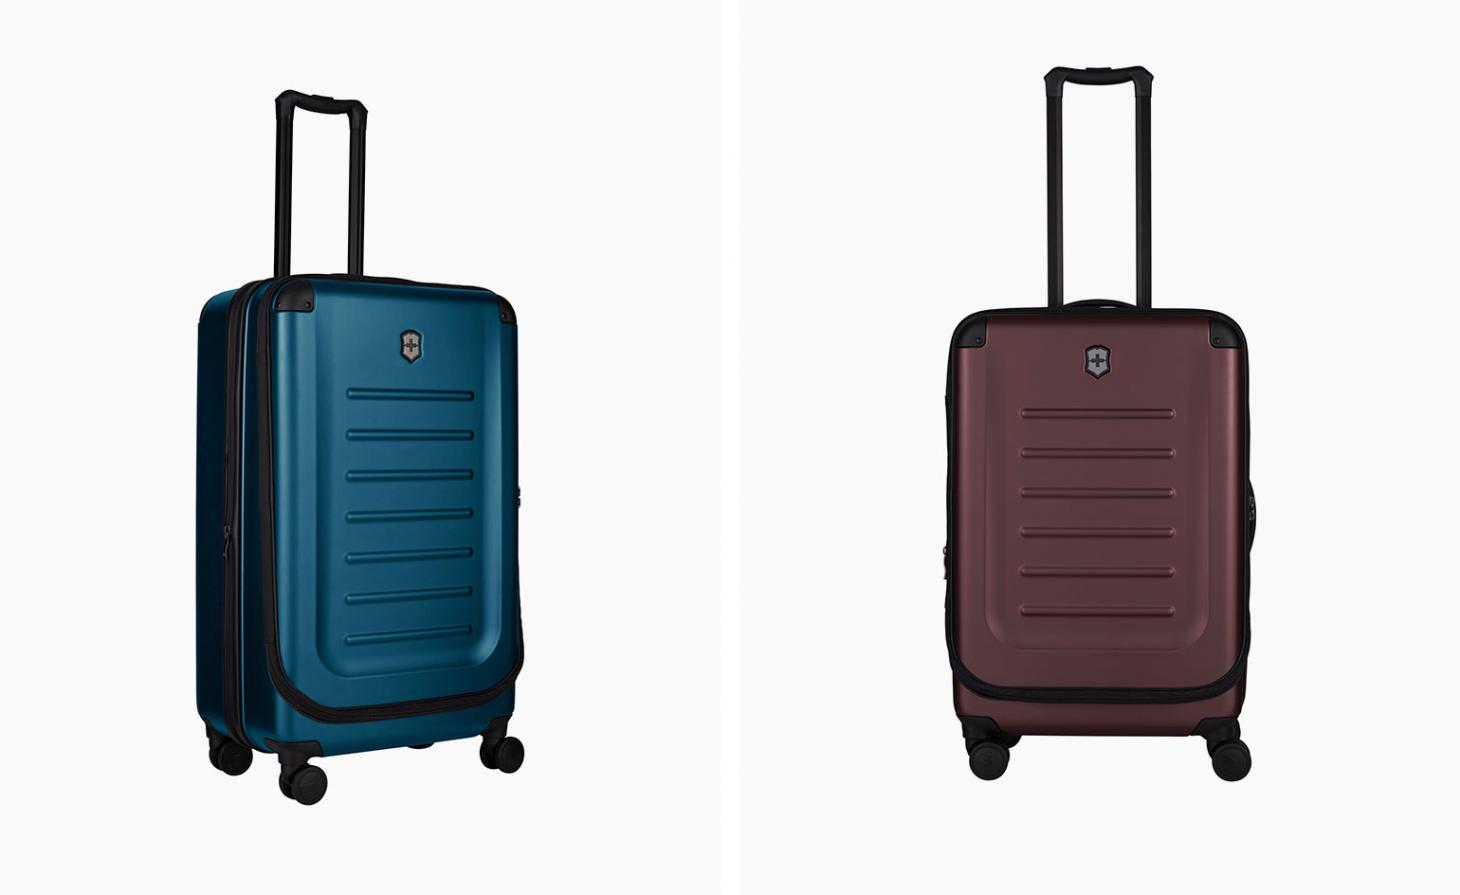 8fa00672c278 Luggage leaders: travel companions to get carried away with | Wallpaper*